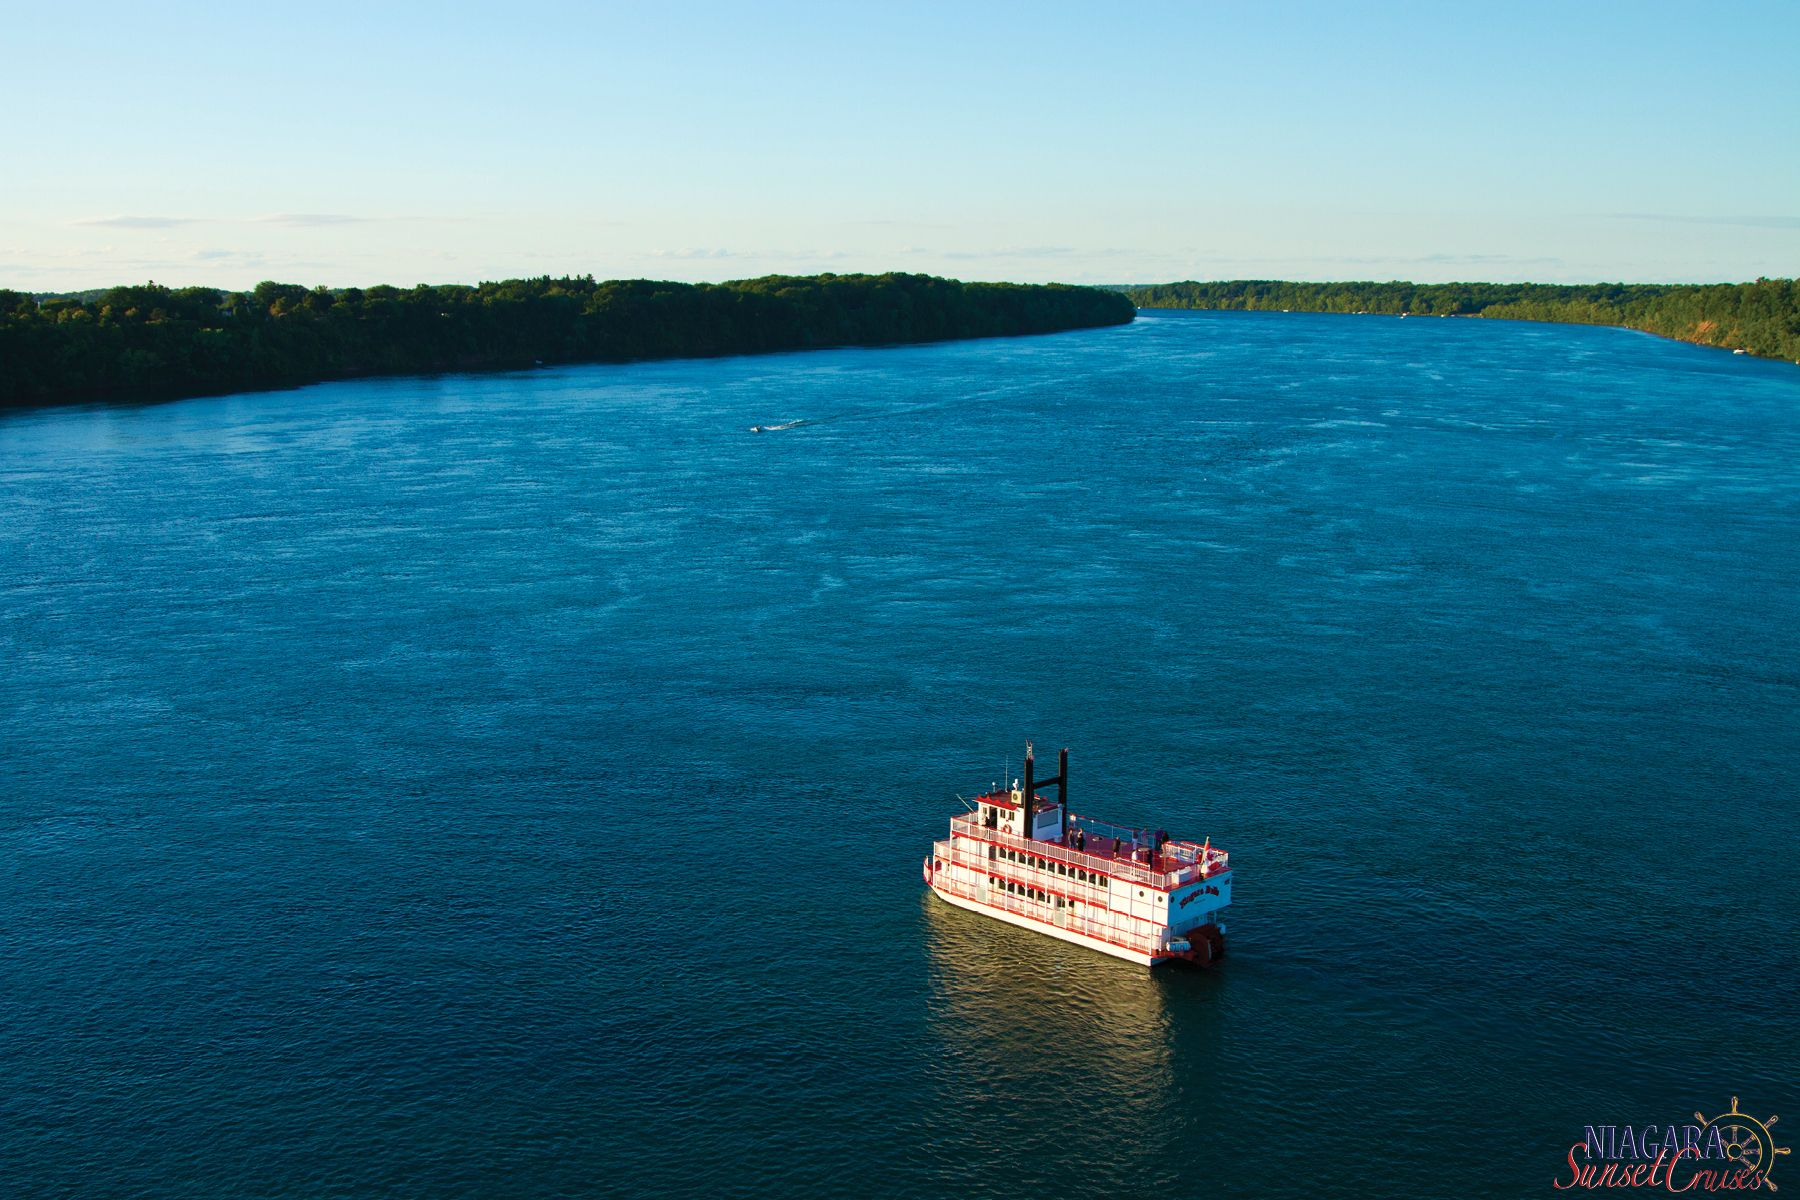 Check out the beauty of the river on the #Niagara Belle.